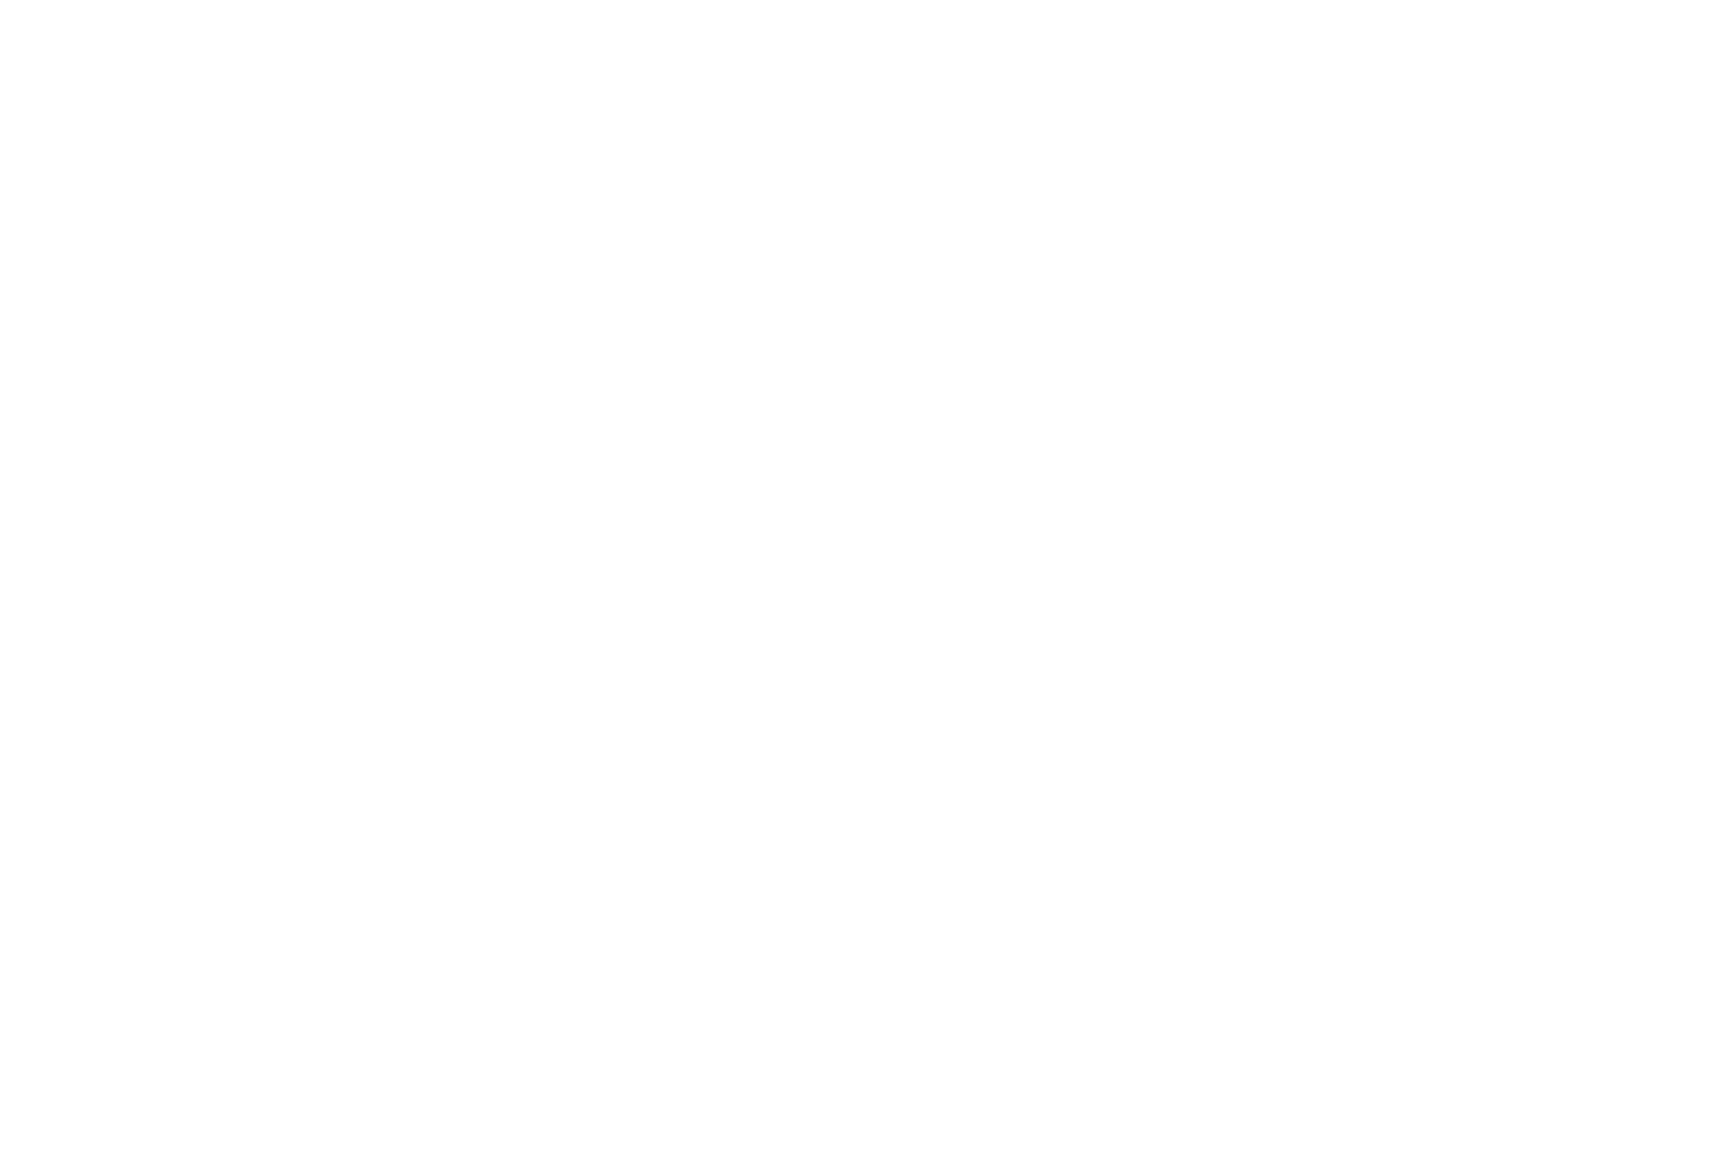 AWARD OF MERRIT - Christian Life International Film Festival - 2017 (1).png